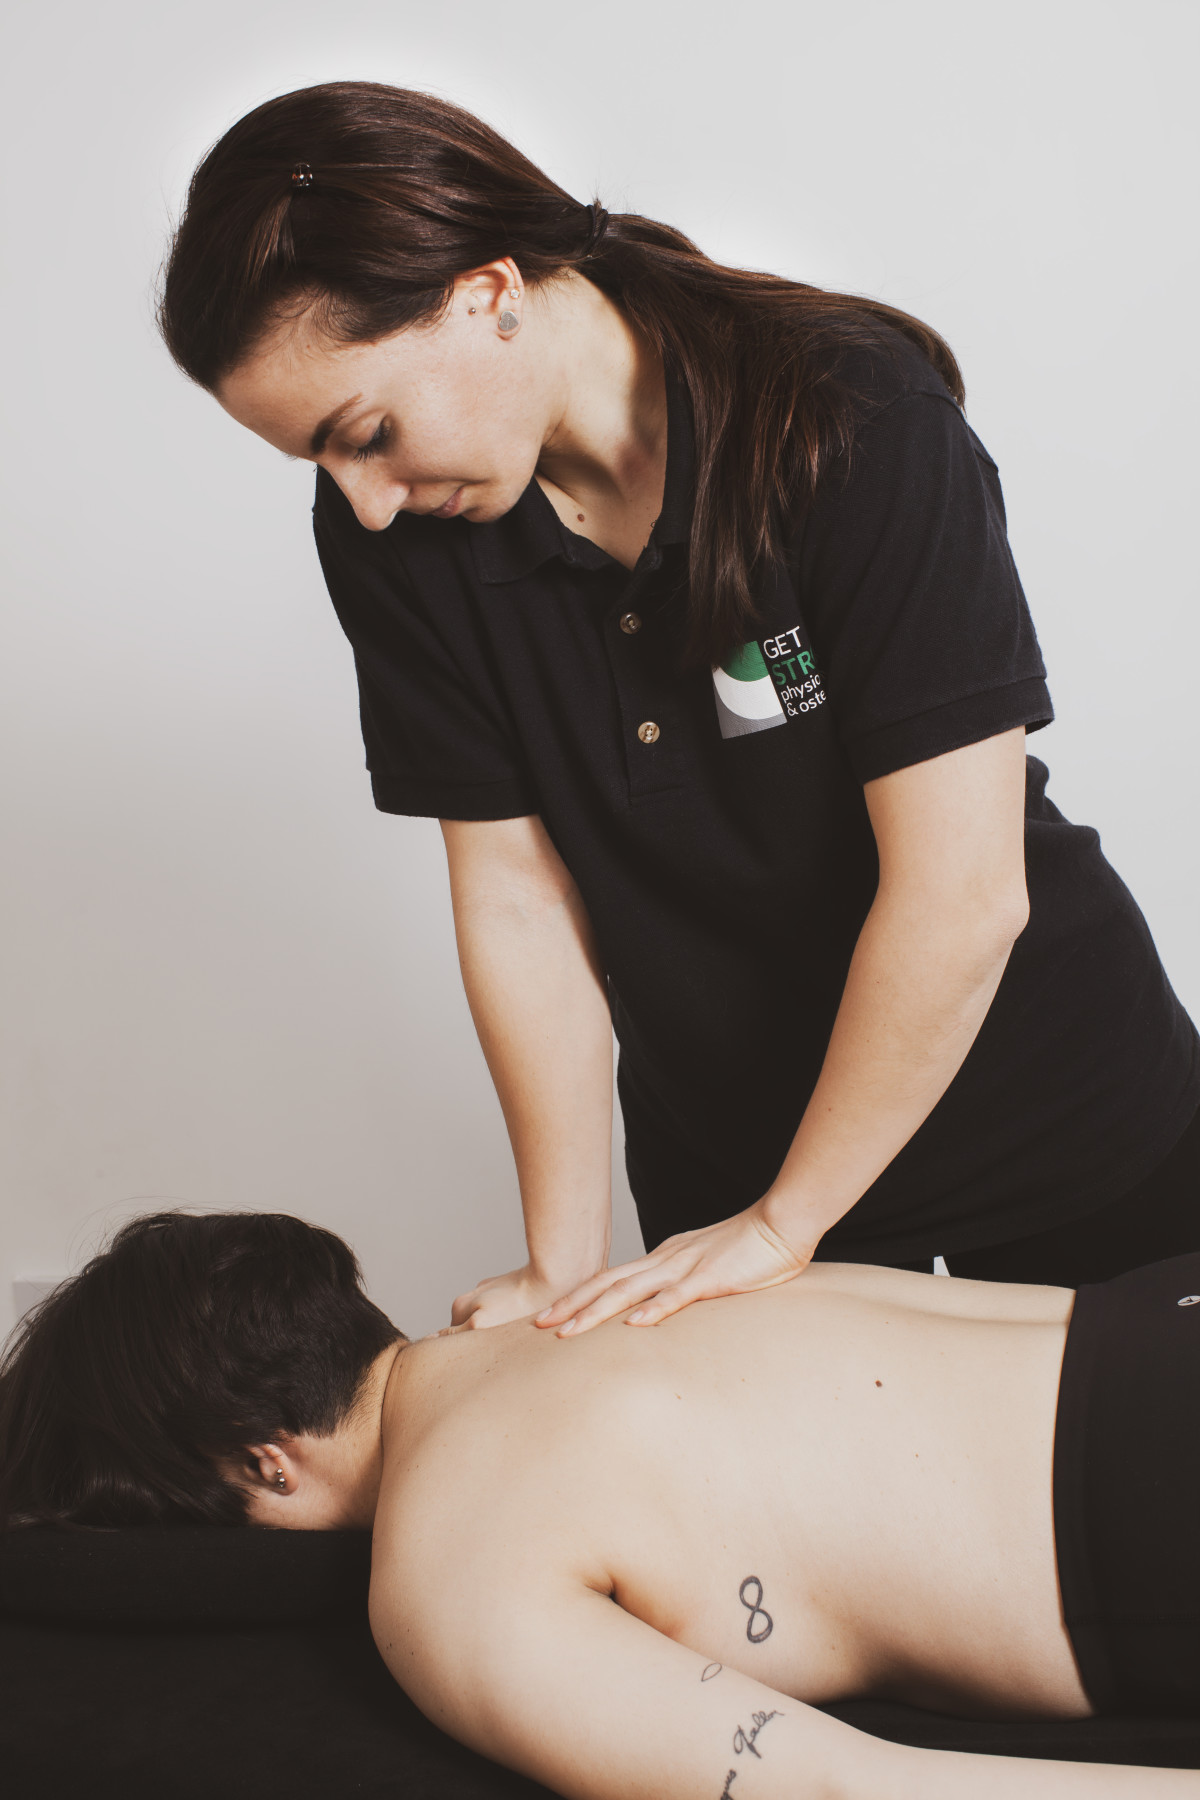 Osteopathy in Kew, your local osteopaths will help reduce pain and get you moving better. Your movement is your strength.